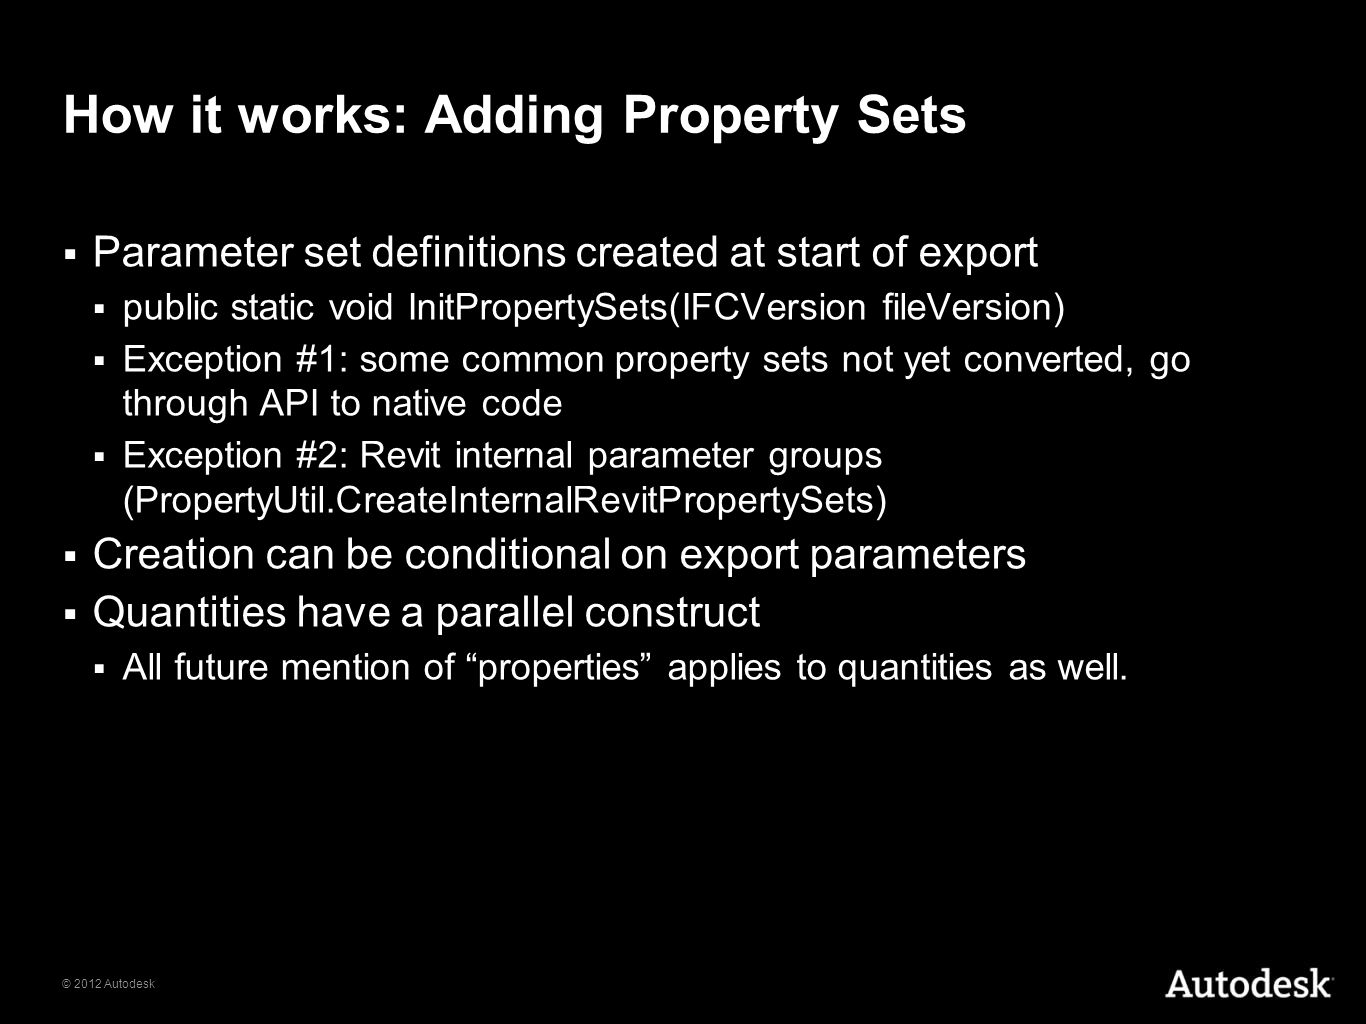 How it works: Adding Property Sets